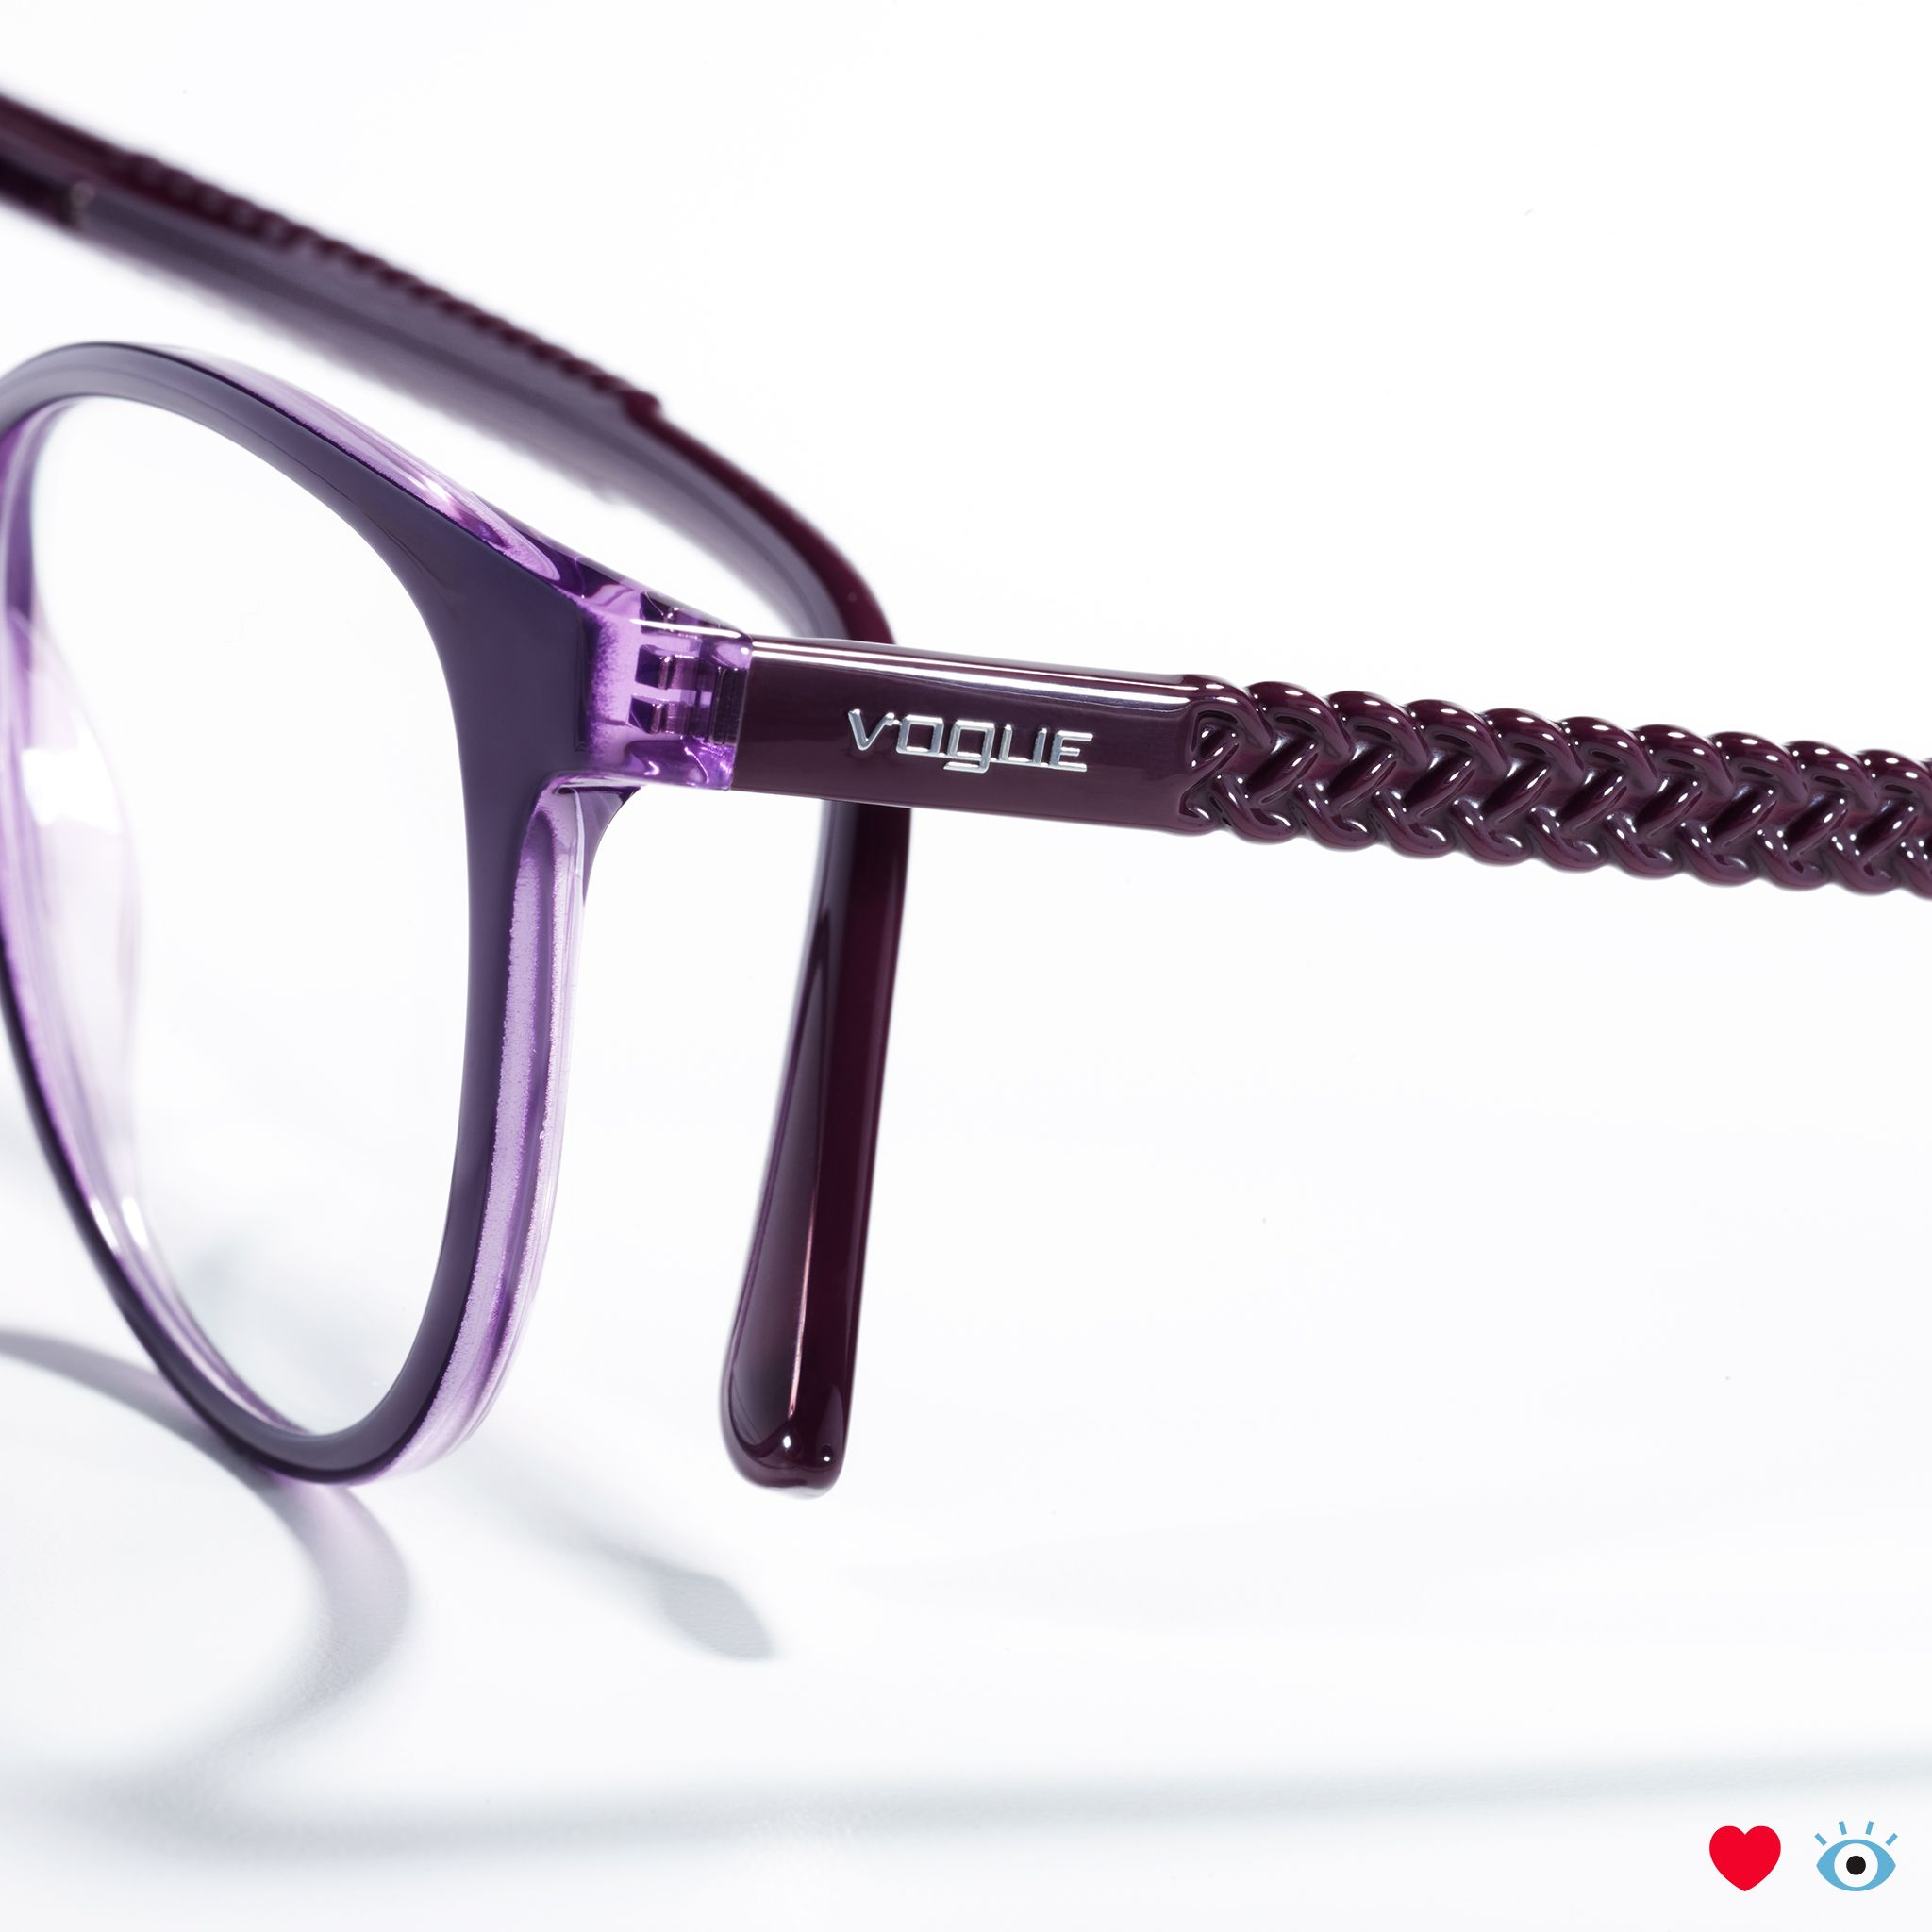 d44928f4a33 These Vogue frames have beautiful and unexpected details like a deep purple  color   textural braids on the sides.